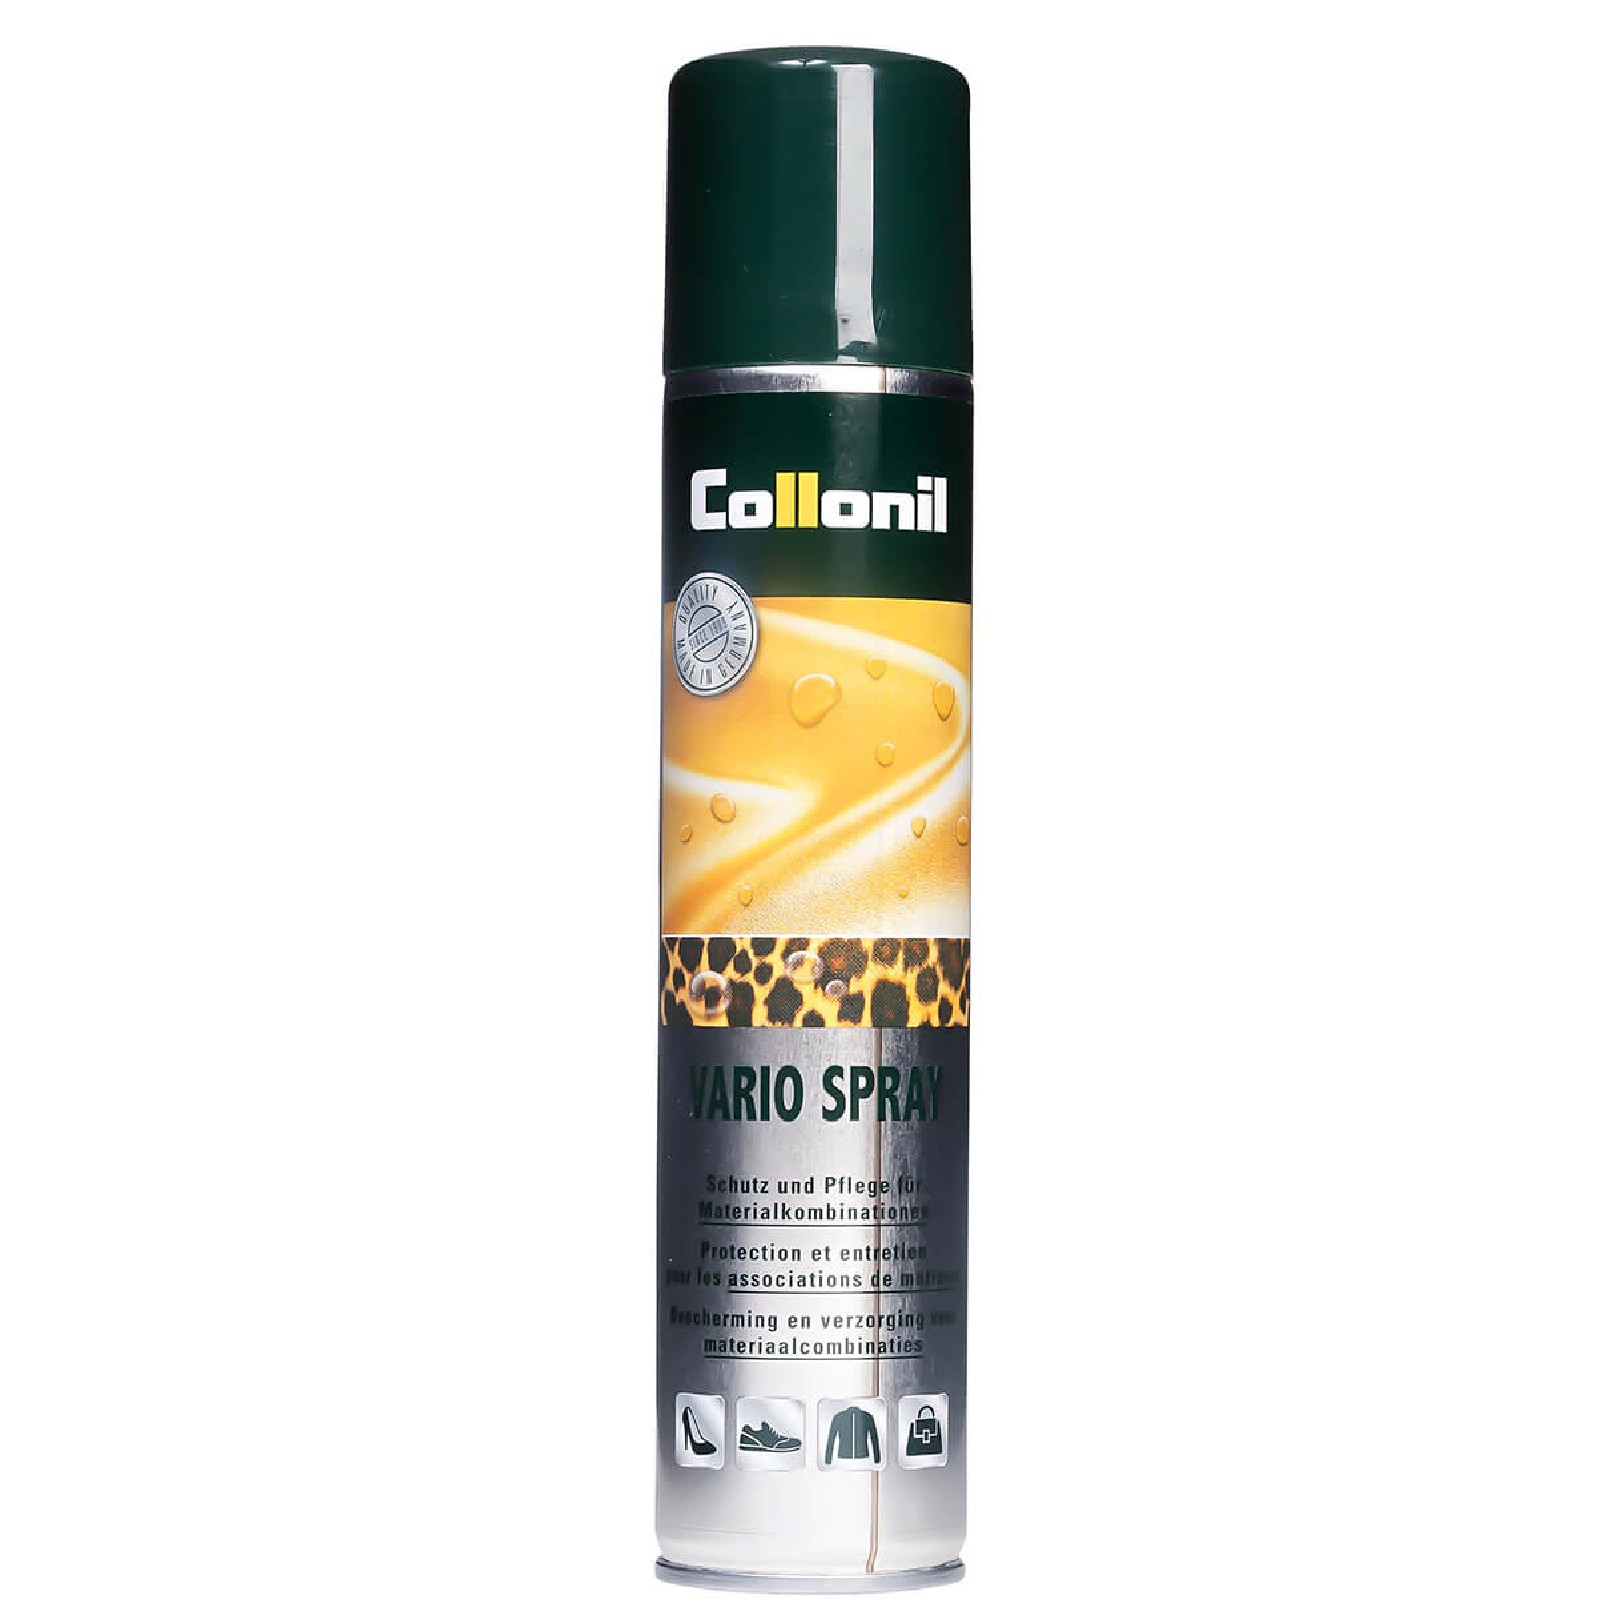 Collonil Vario 200 ml